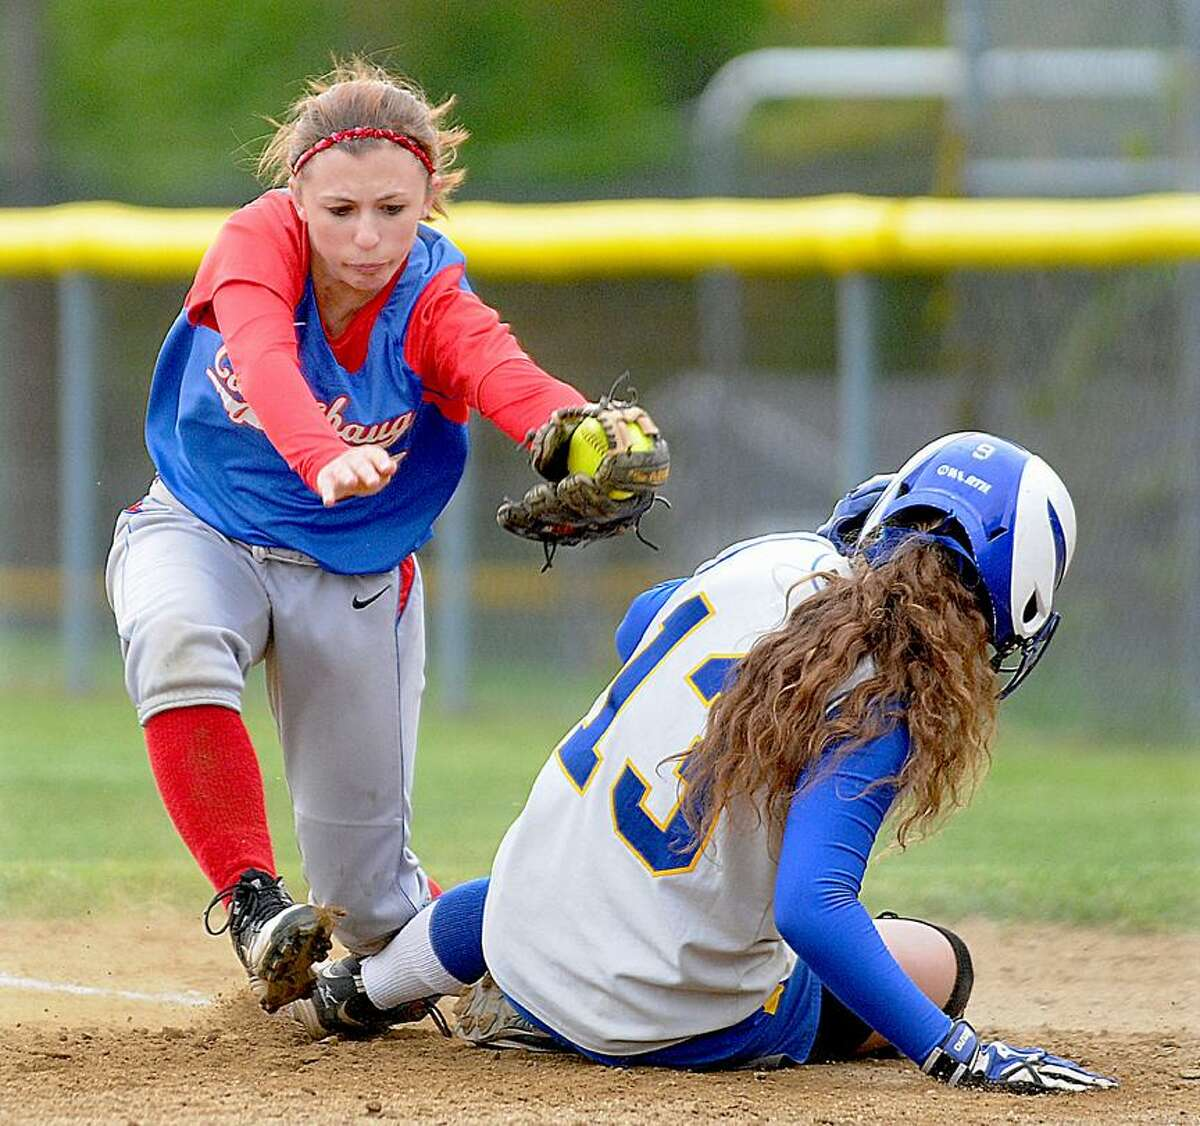 Catherine Avalone/The Middletown PressCoginchaug second baseman Dina Canalia looks to tag H-K's Sam Waskowitz at first Wednesday in Durham. H-K won, 6-3.